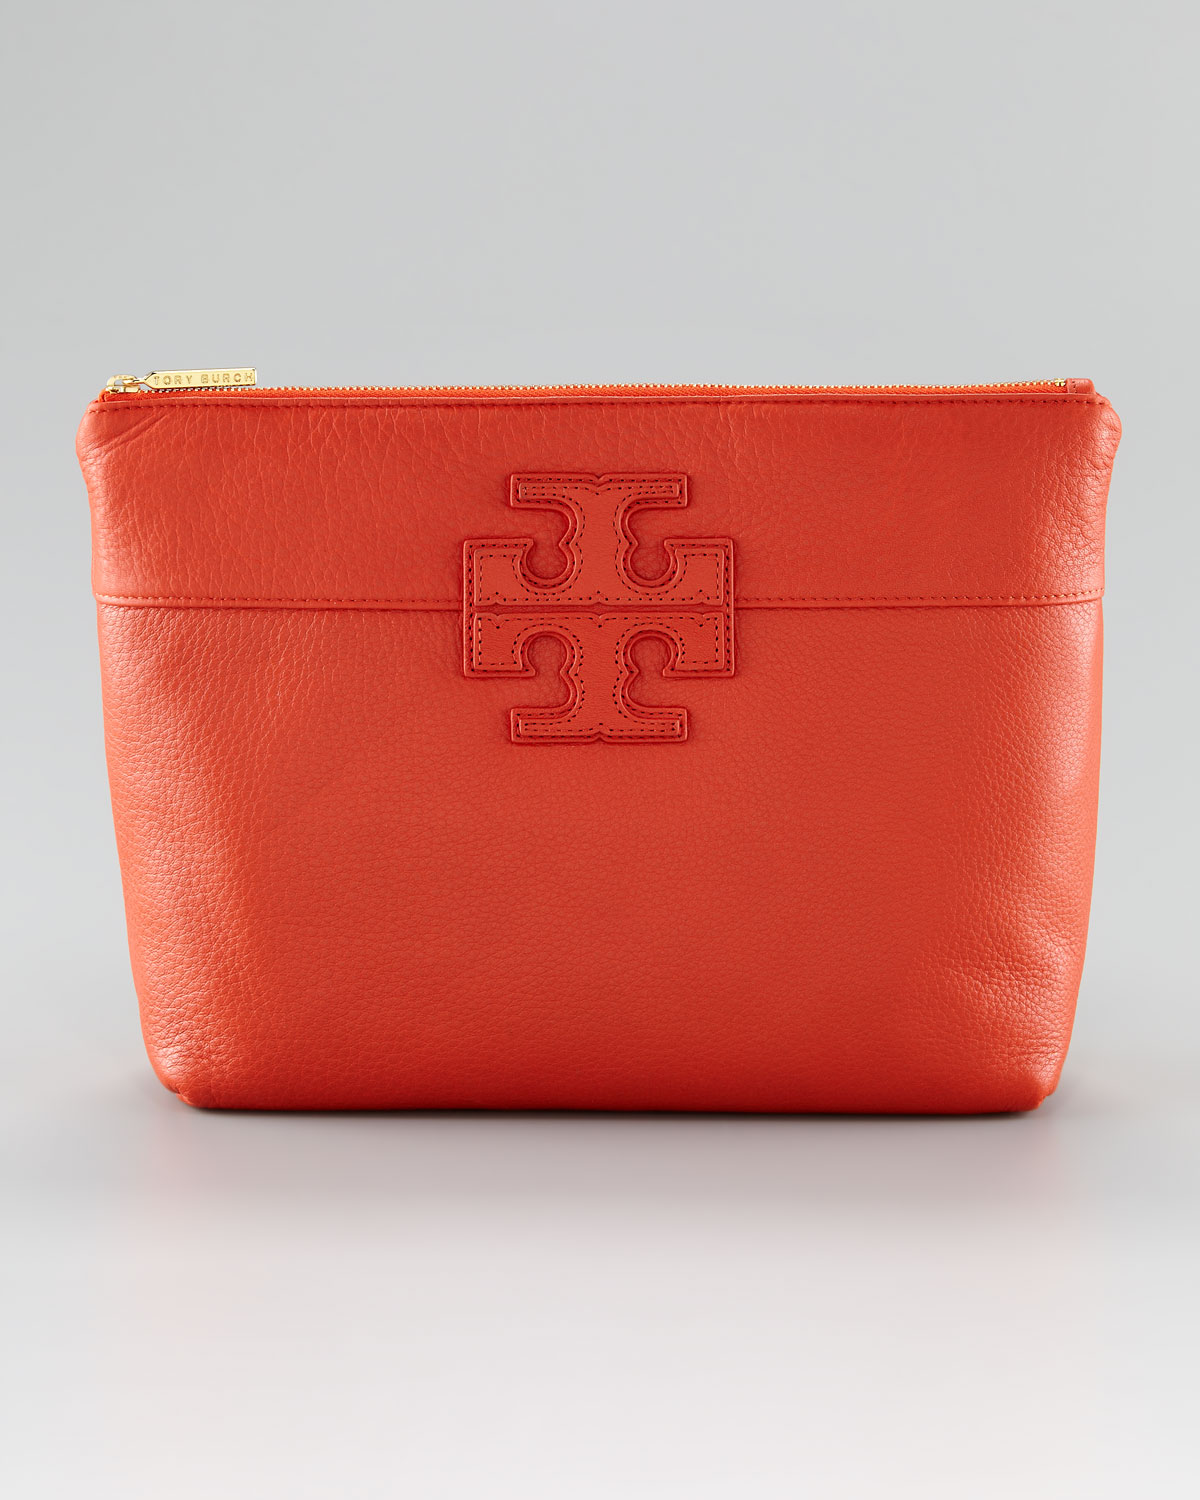 Tory Burch Stacked Logo Cosmetic Case Red Black Lyst